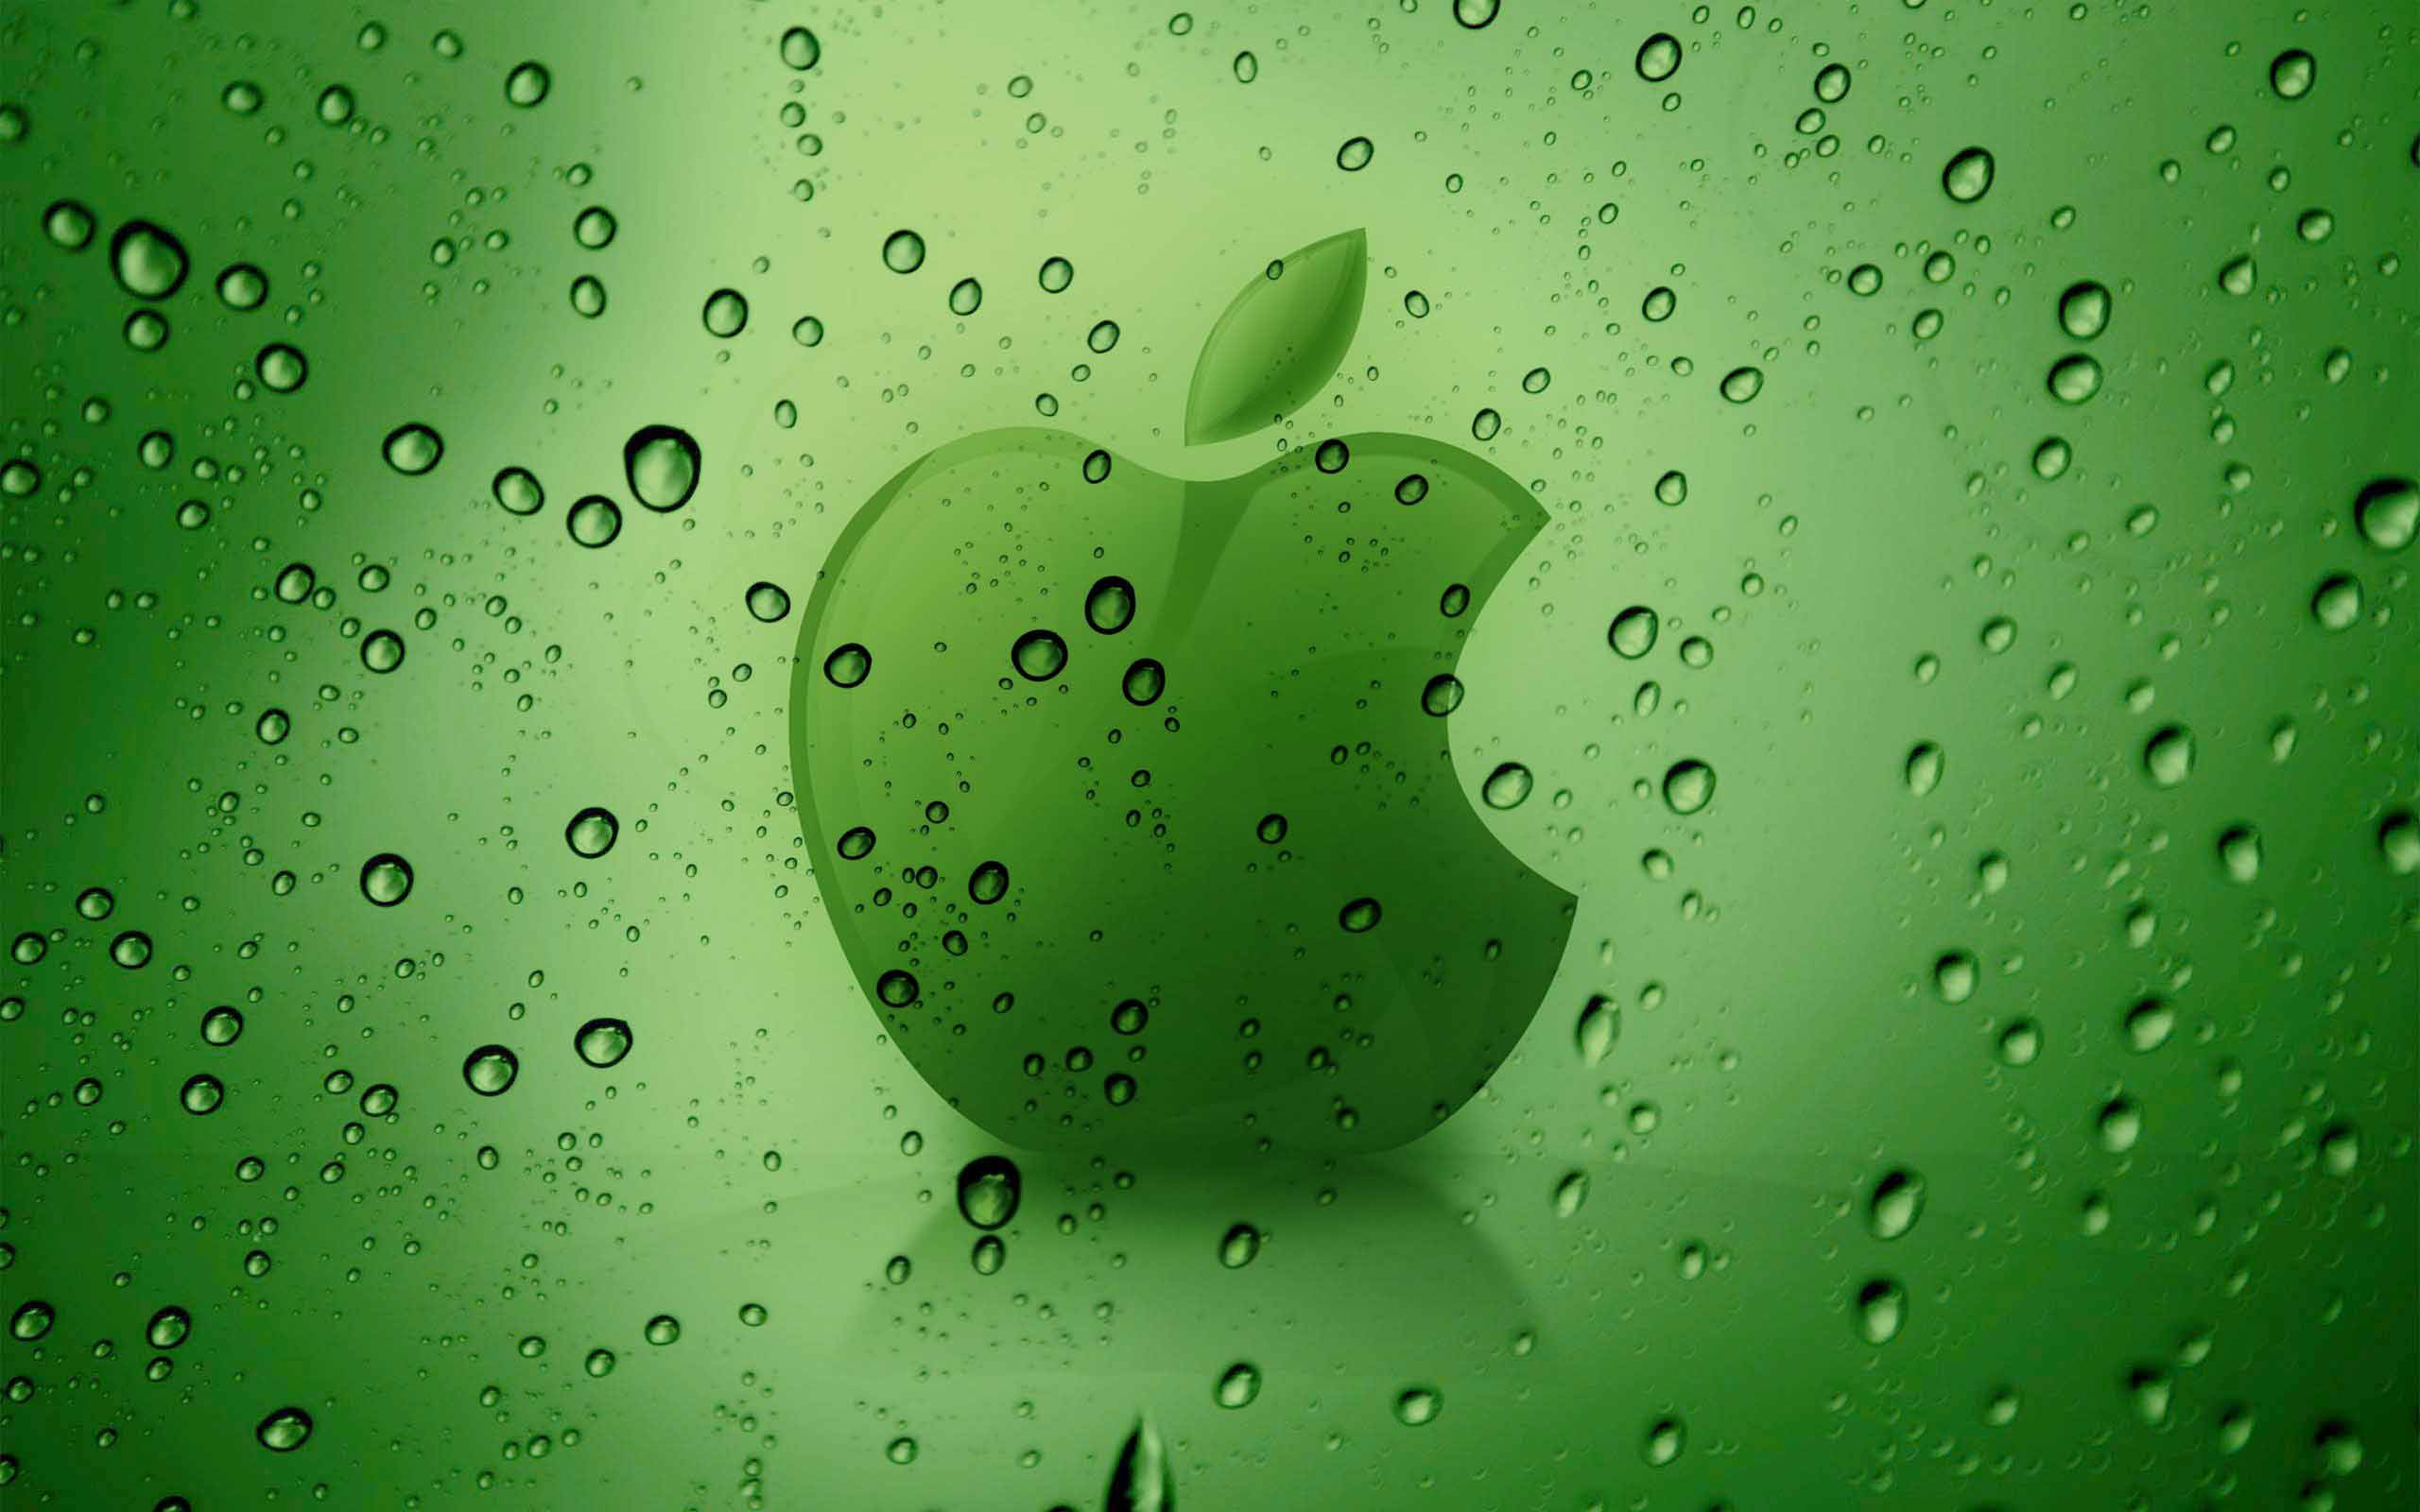 Wallpaper download apple - 3d Green Apple Wallpaper Background Wallpapers Hd Download